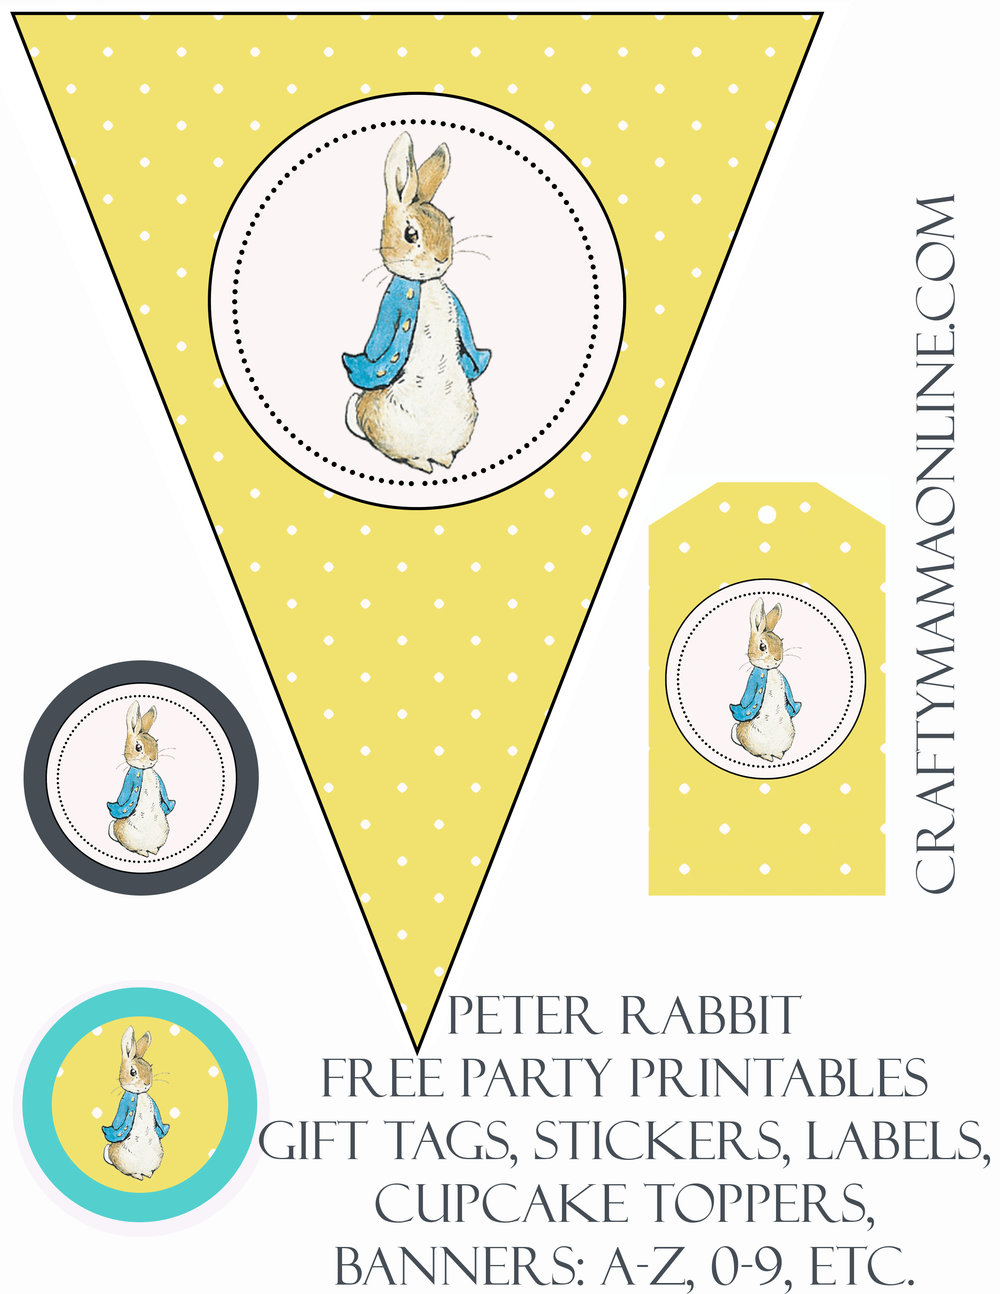 peter rabbit free party printables